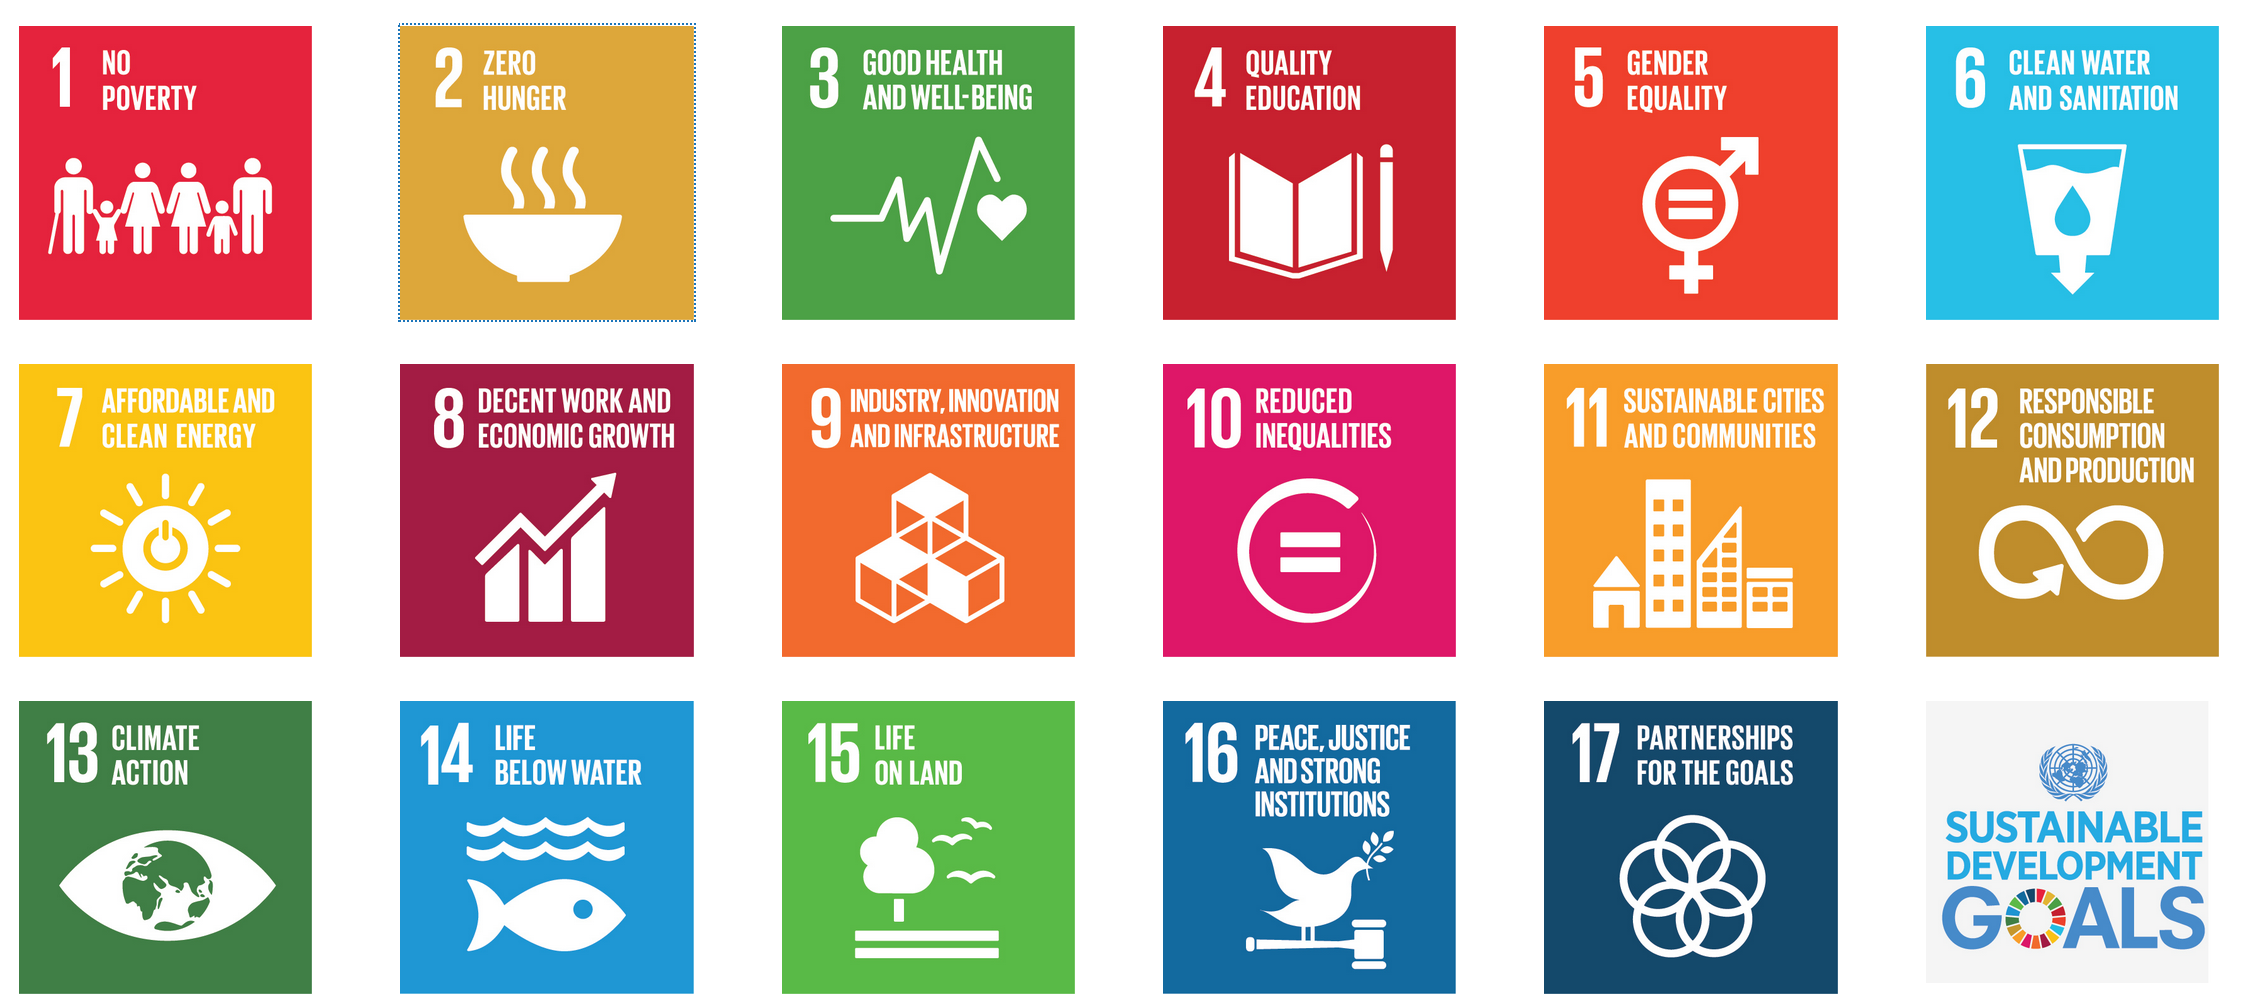 the charter for compassion and the sustainable development goals